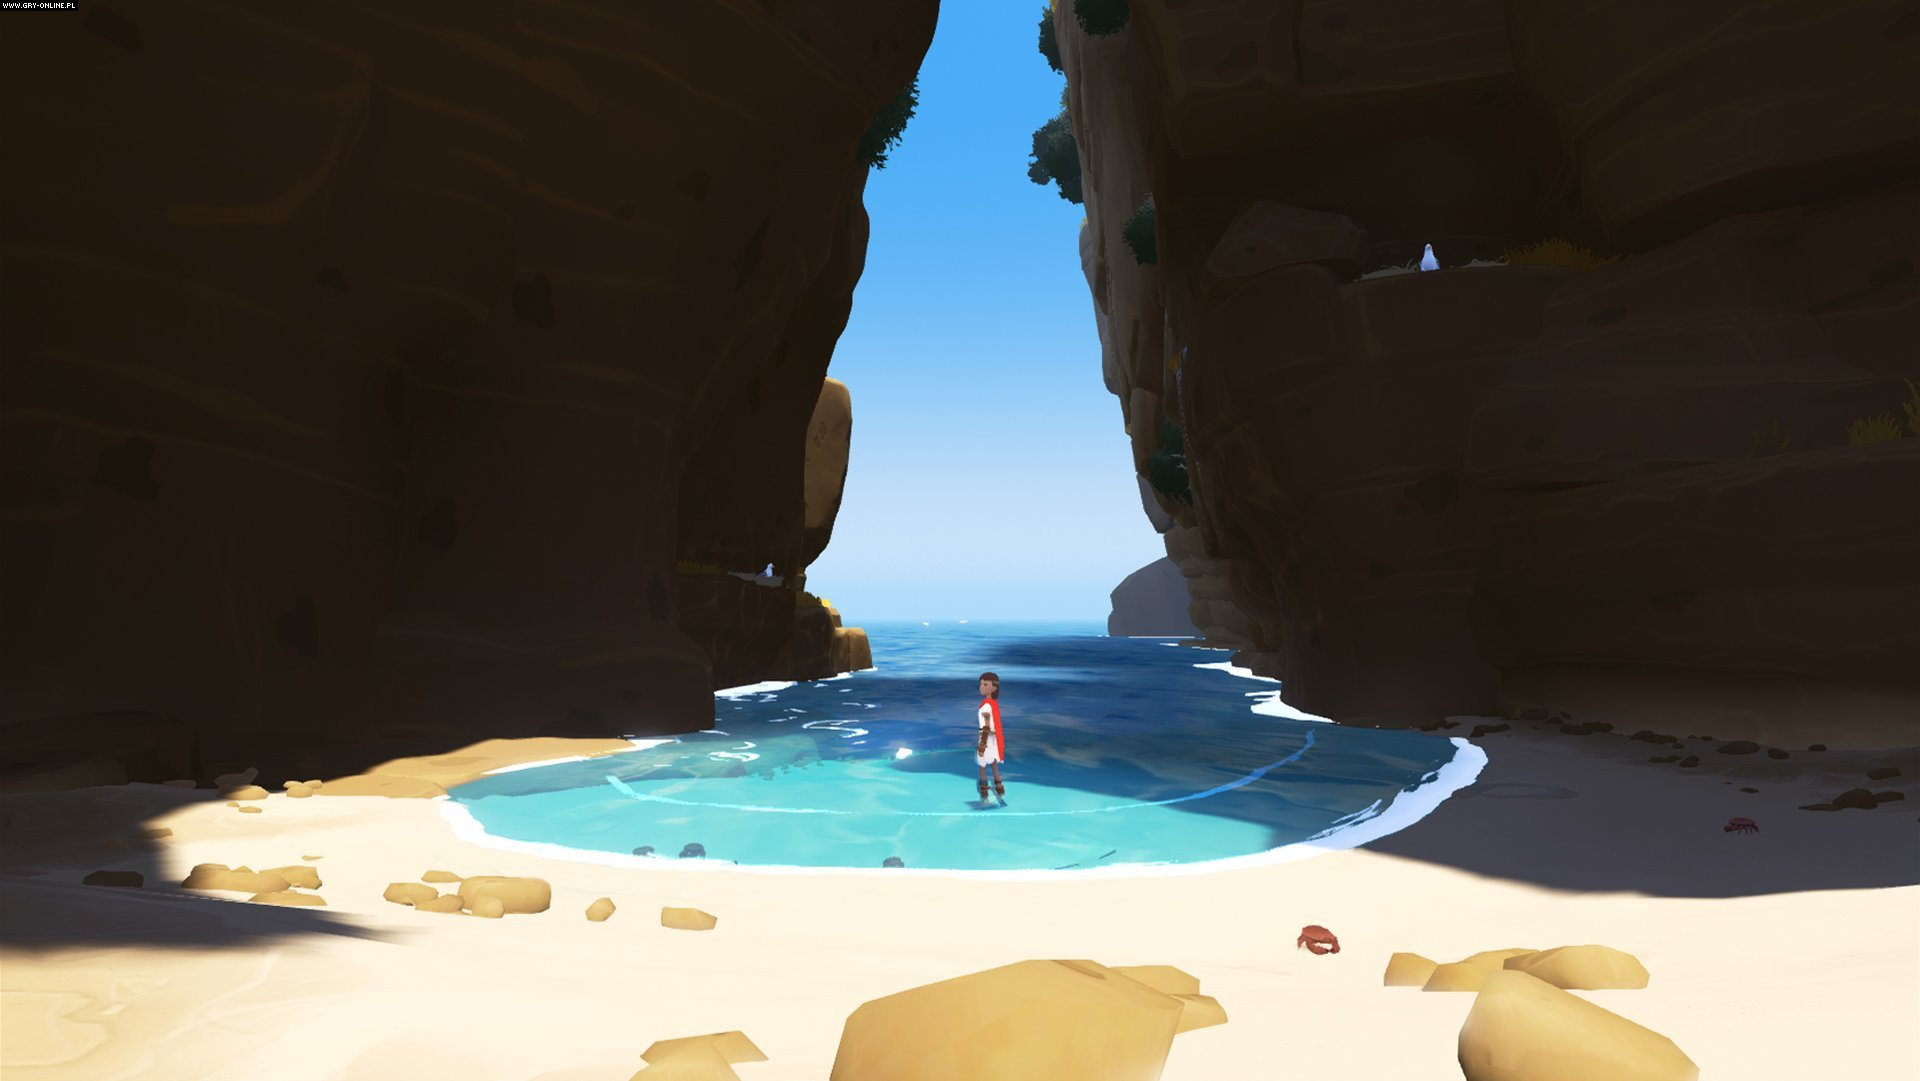 Rime PSV, PS4 Games Image 33/38, Tequila Works, Grey Box